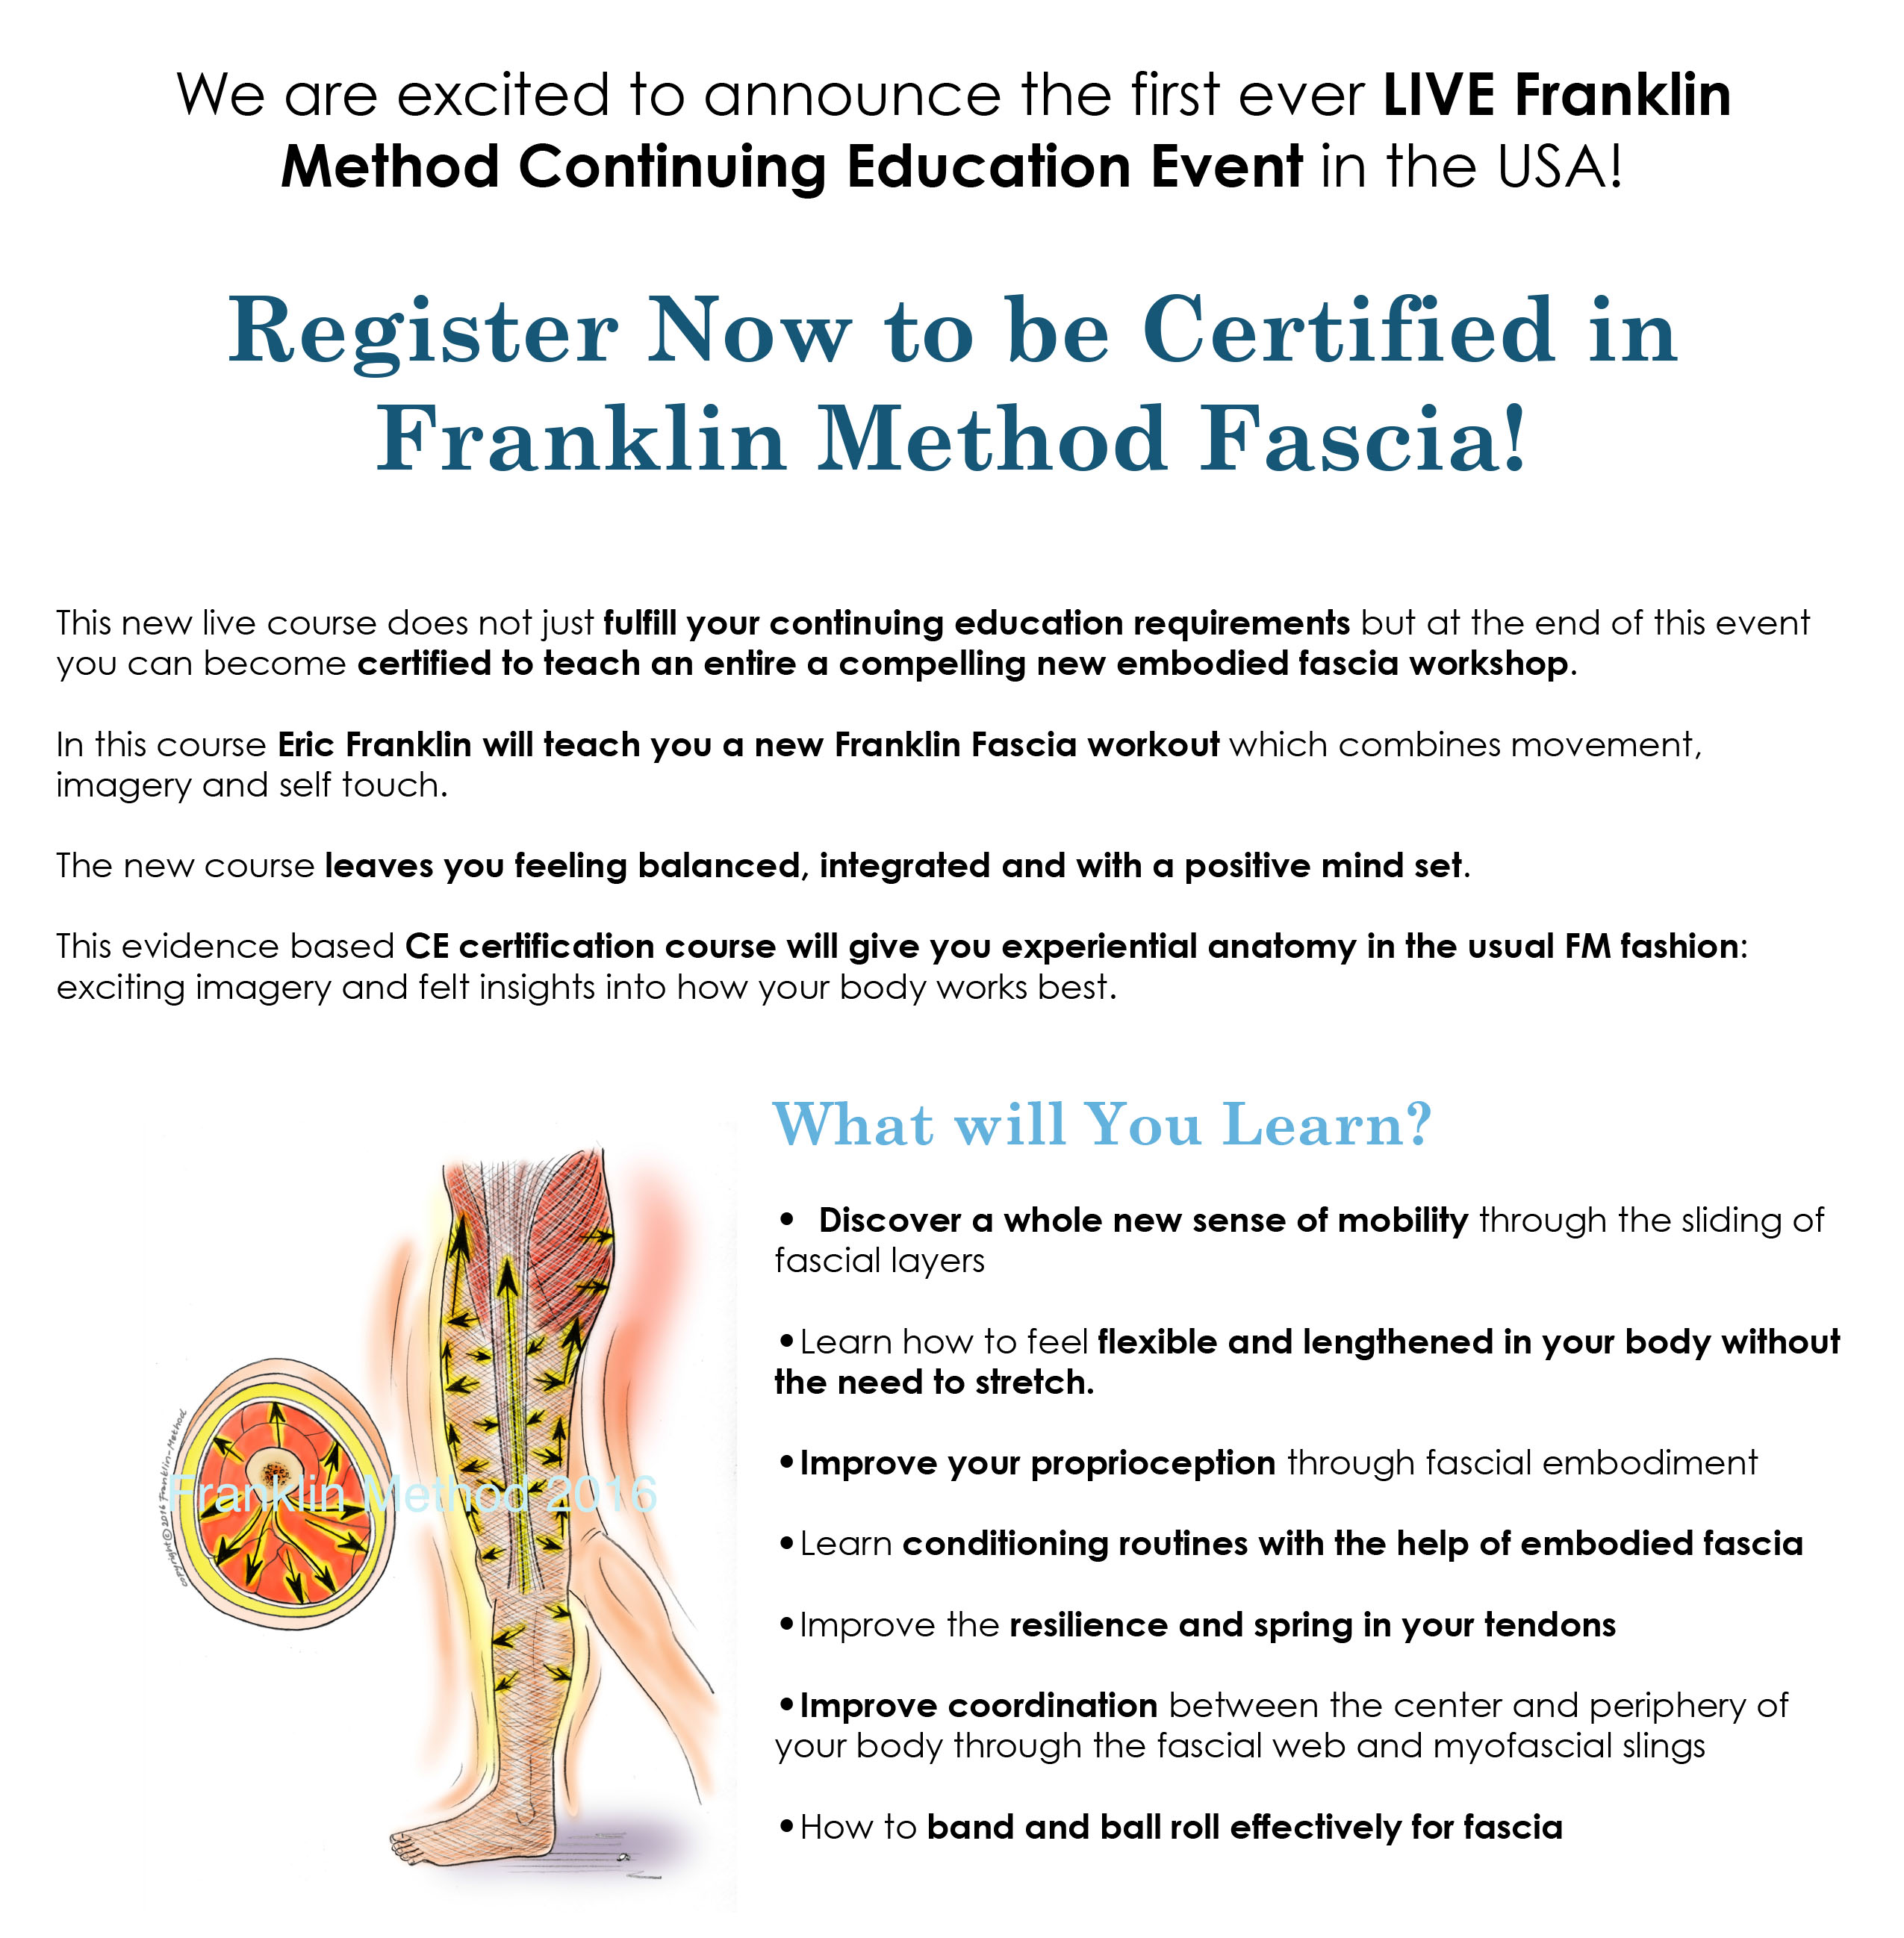 Register now certification to teach franklin method fascia register now certification to teach franklin method fascia franklin method 1betcityfo Images